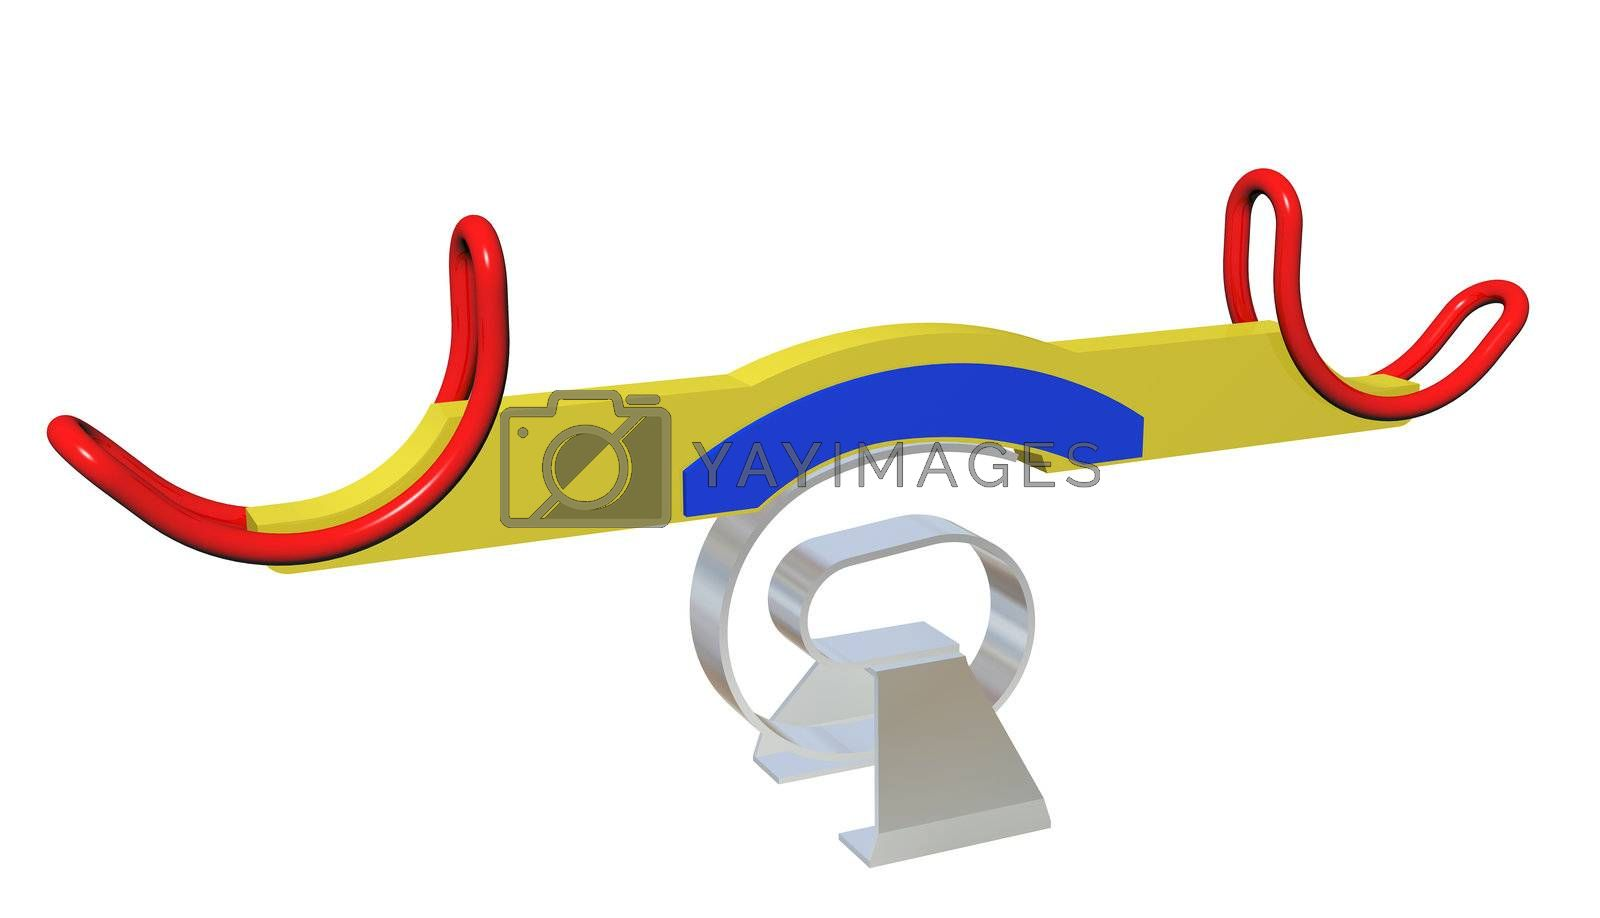 Modern colorful seesaw, 3d illustration, isolated against a white background